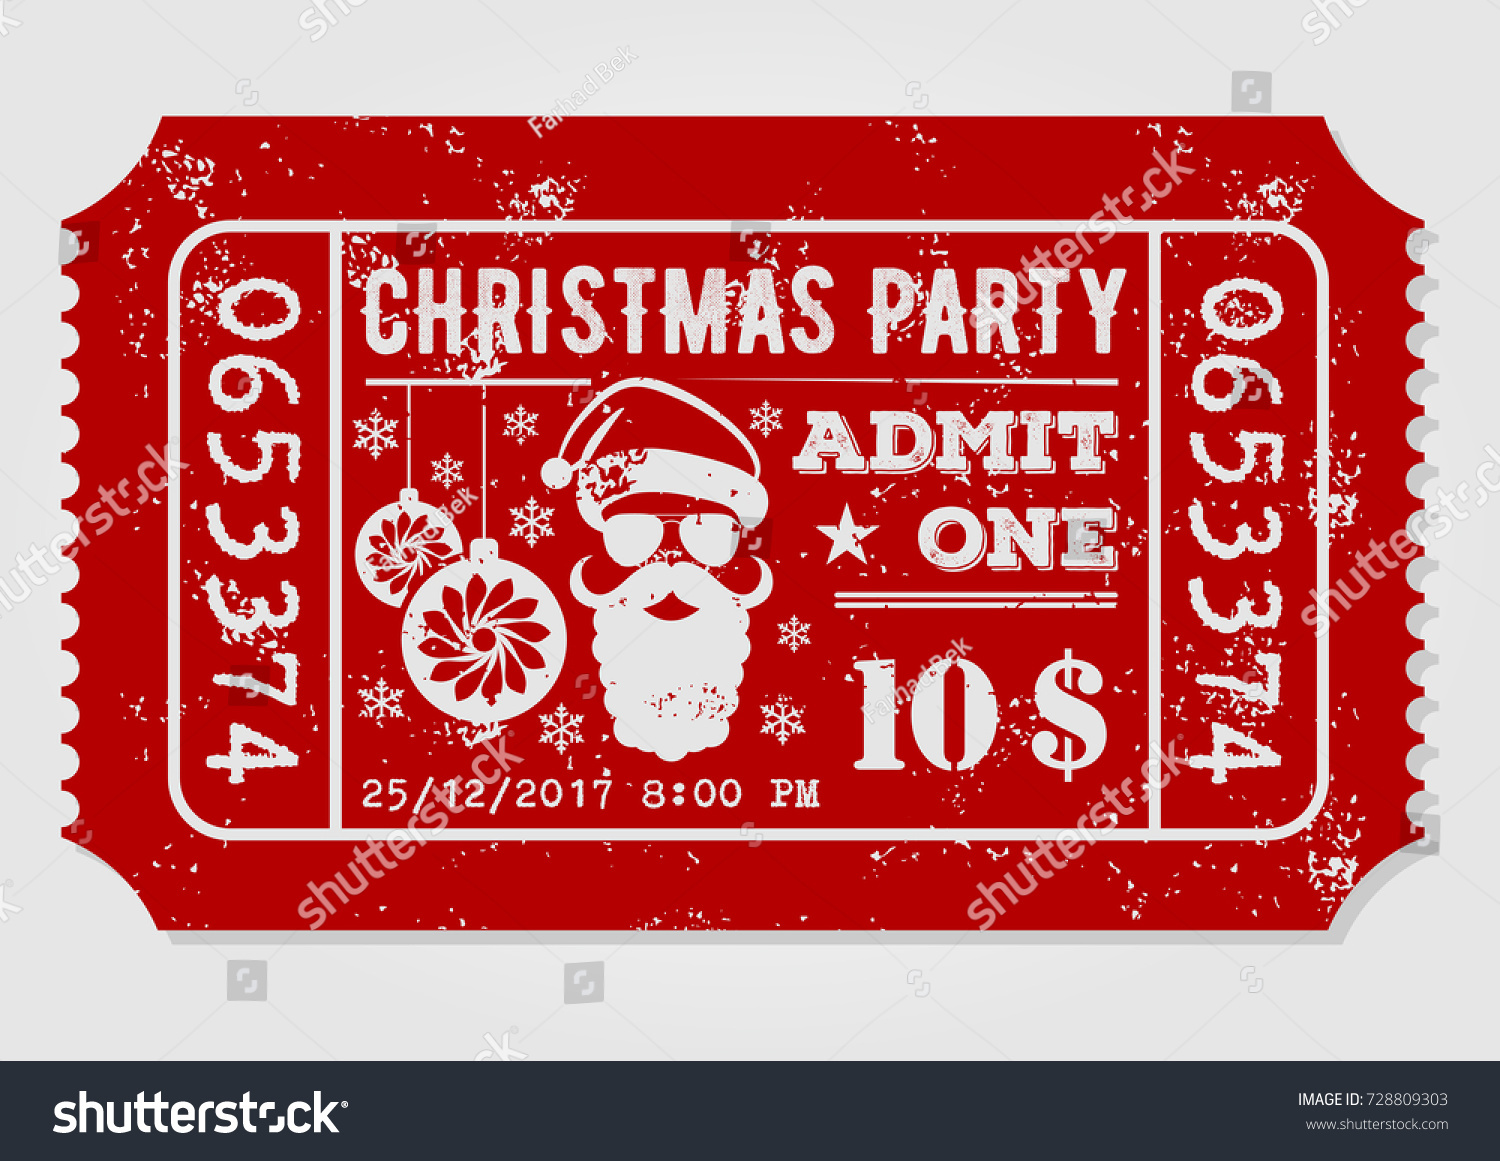 Vintage Christmas Party Invitation Design Template Stock Vector ...